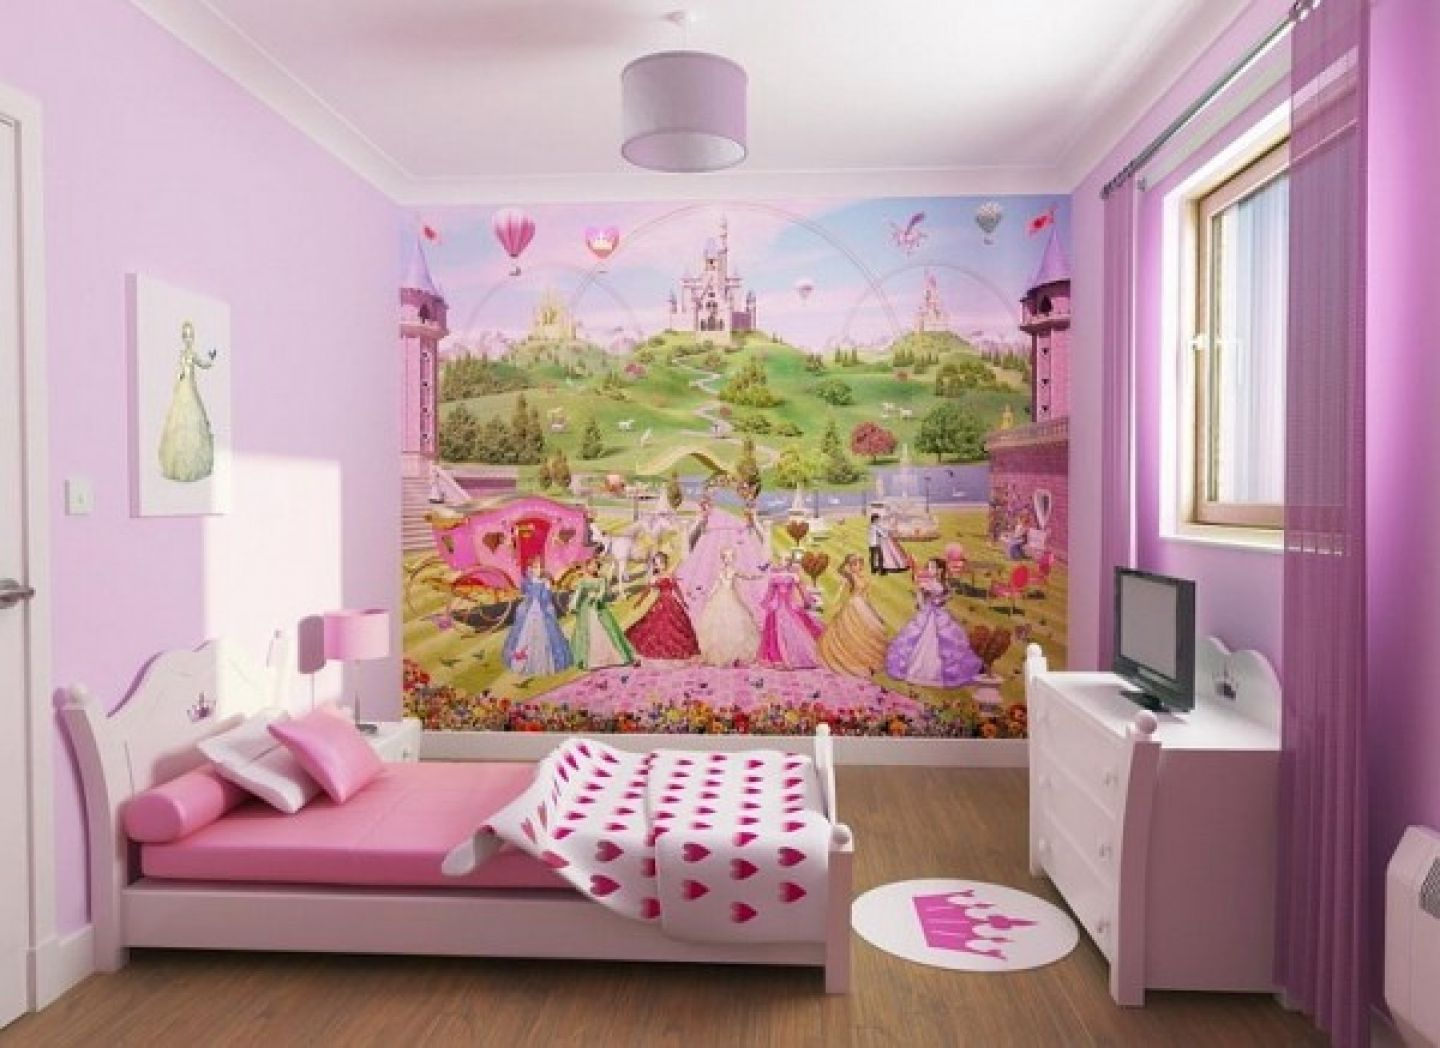 Girls Bedroom Decorating Ideas Best Girls' Bedroom Style  Bedrooms Small Bedroom Decorating And Room Decorating Design